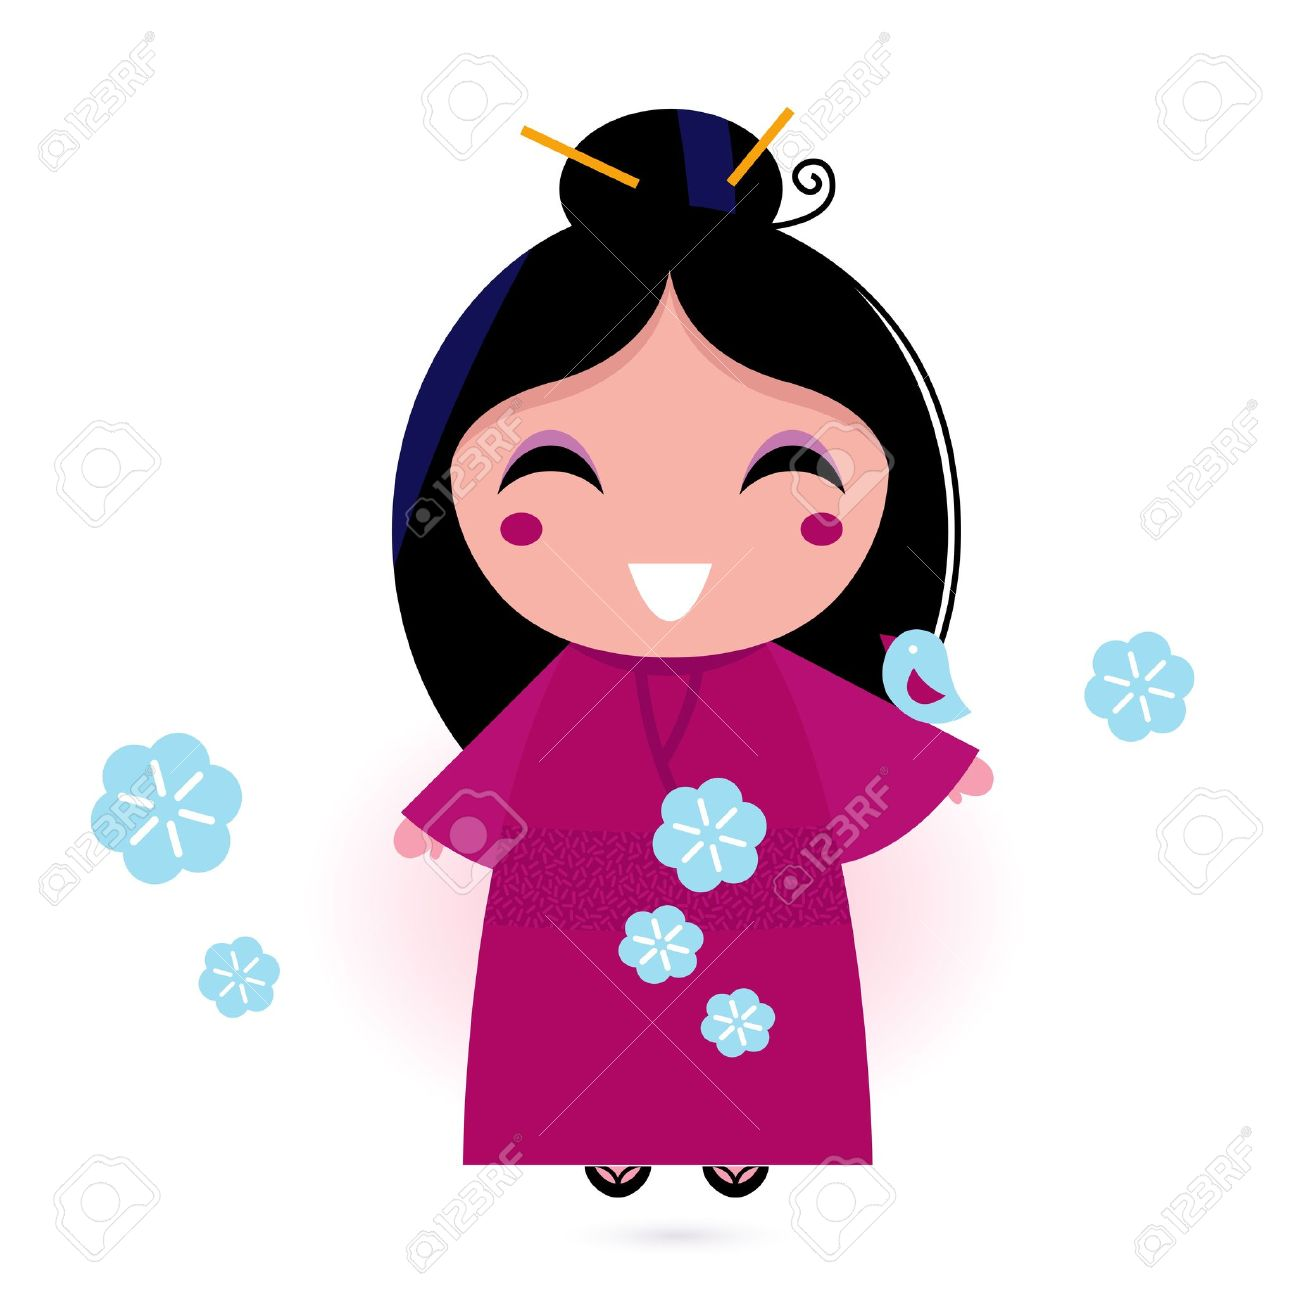 Anime clipart japan Characters girl of asian characters